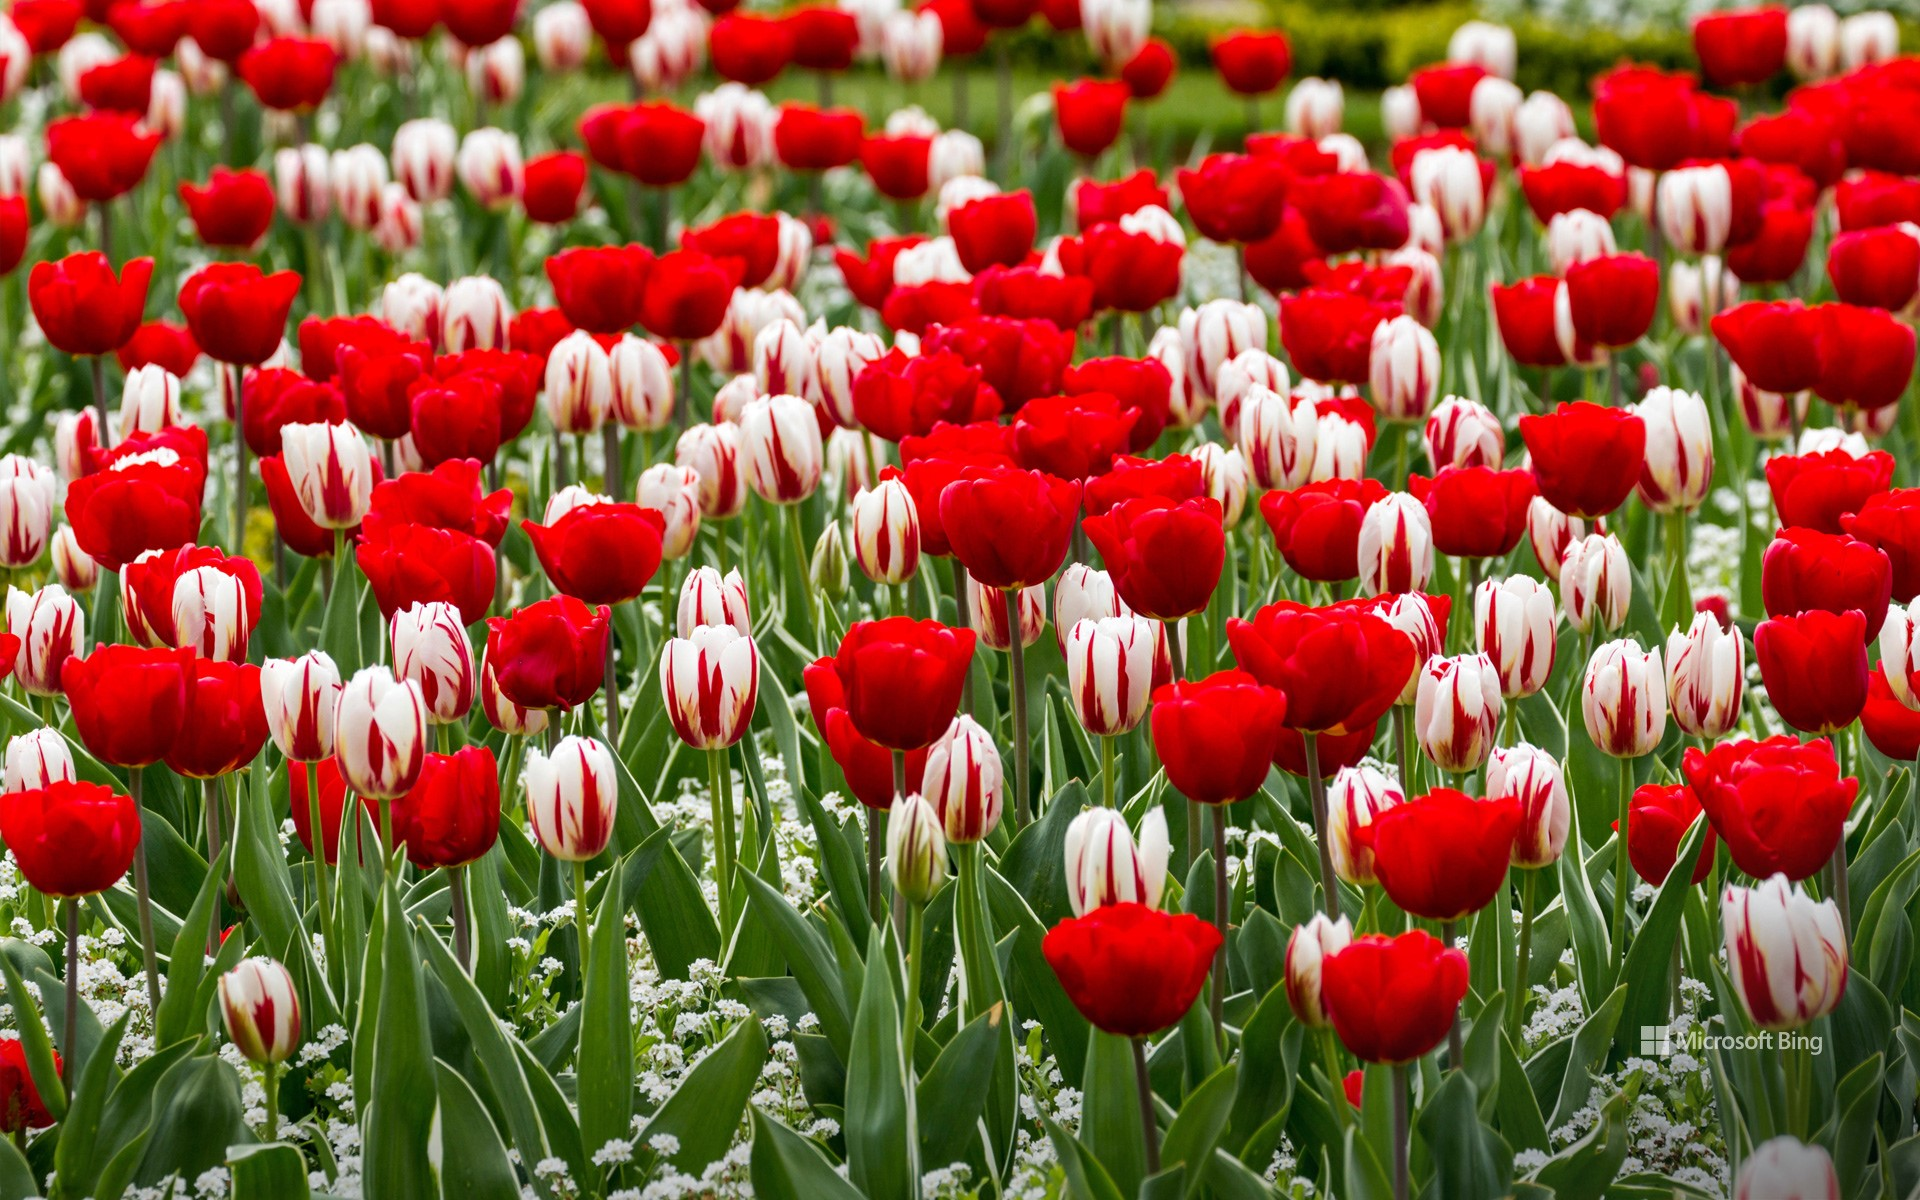 Red and white tulips for St George's Day